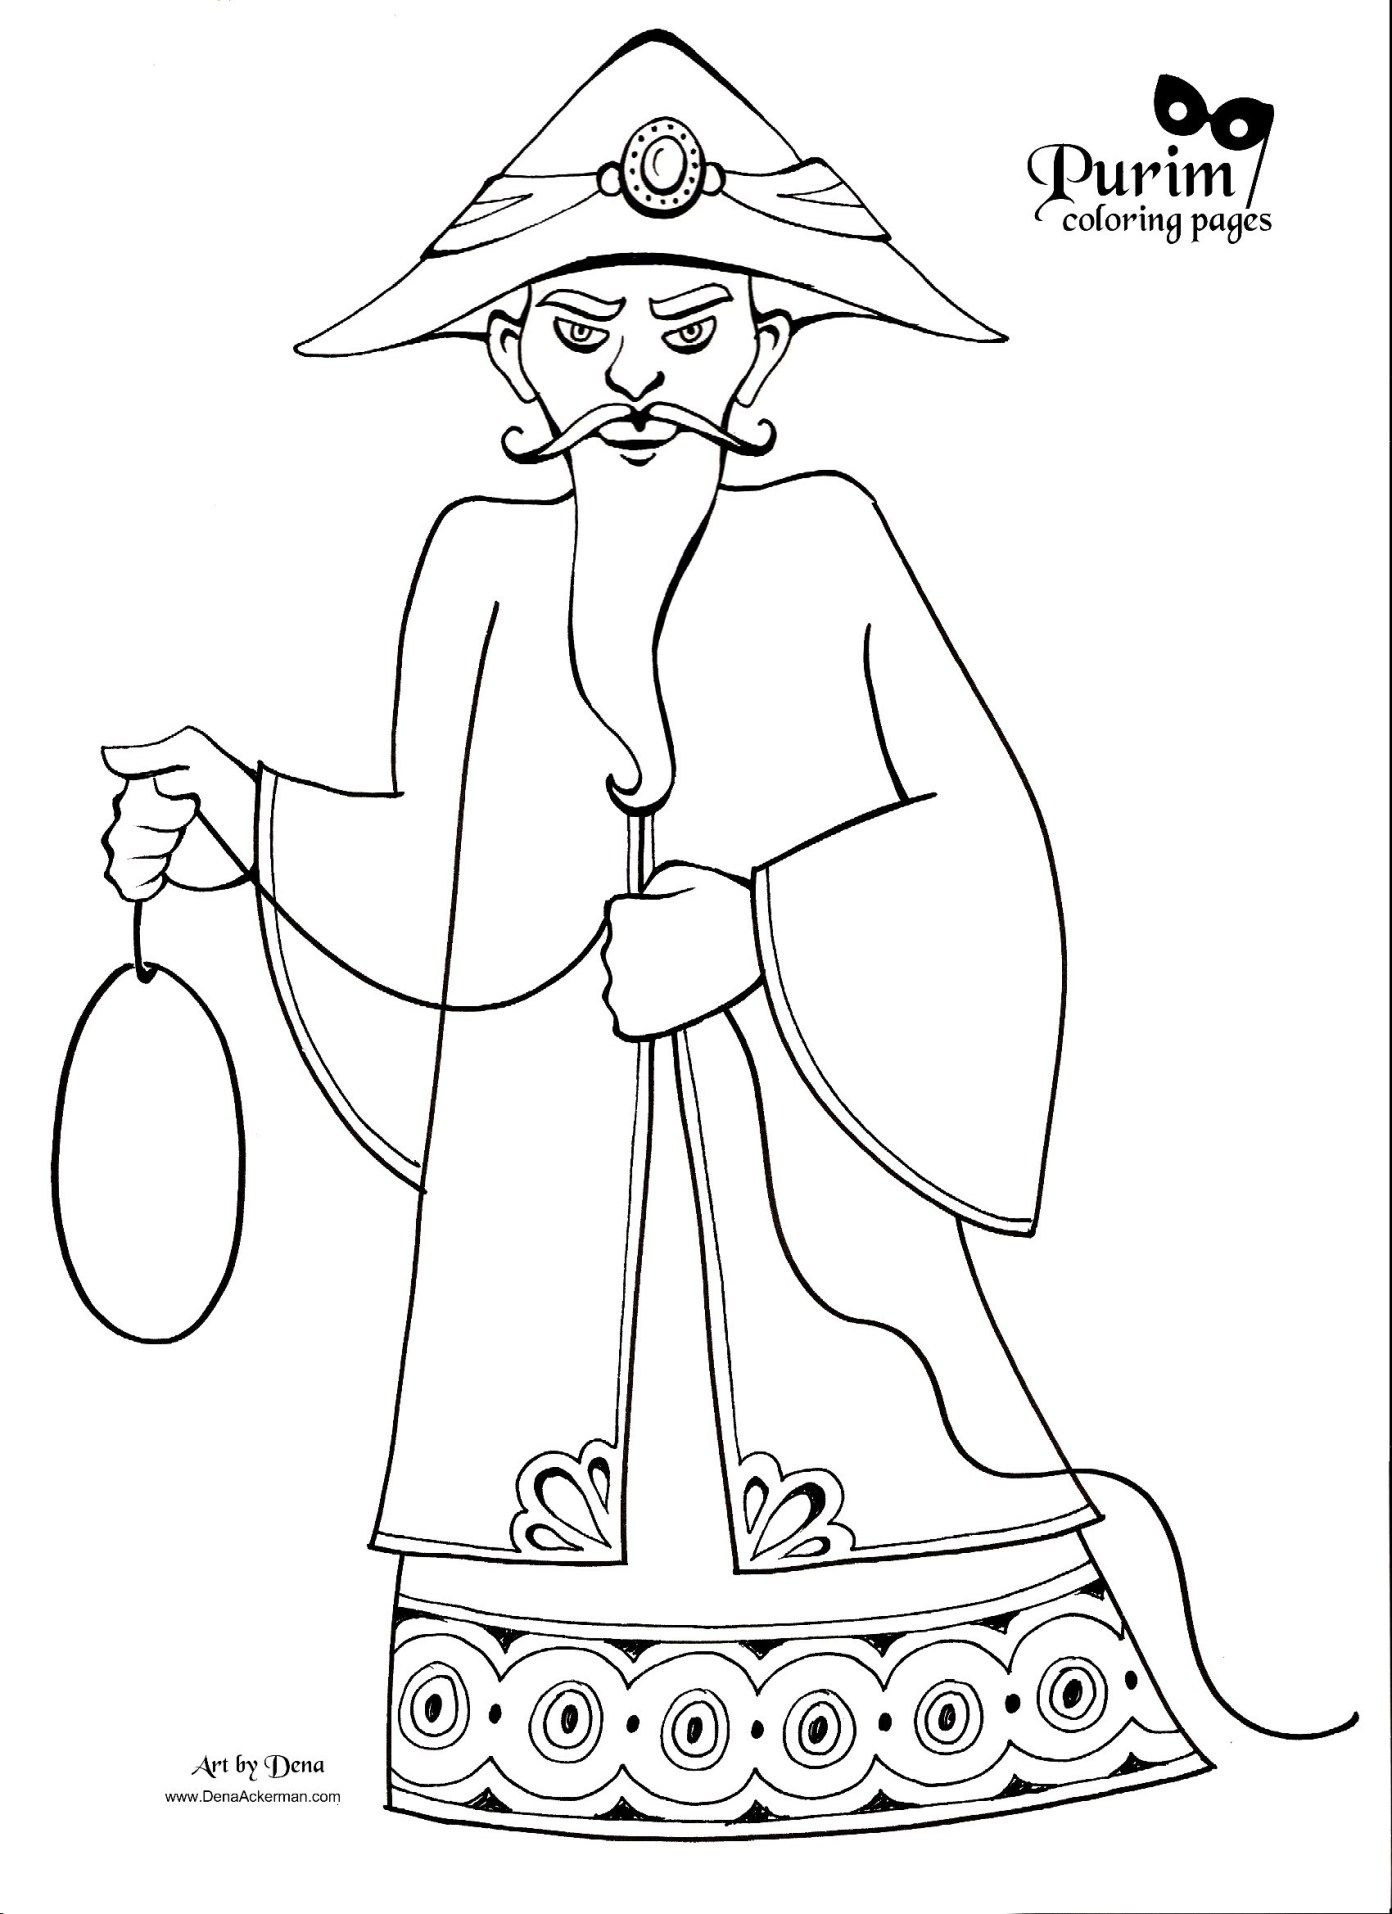 Pin by Avivit R on פורים ילדים Coloring pages, Purim